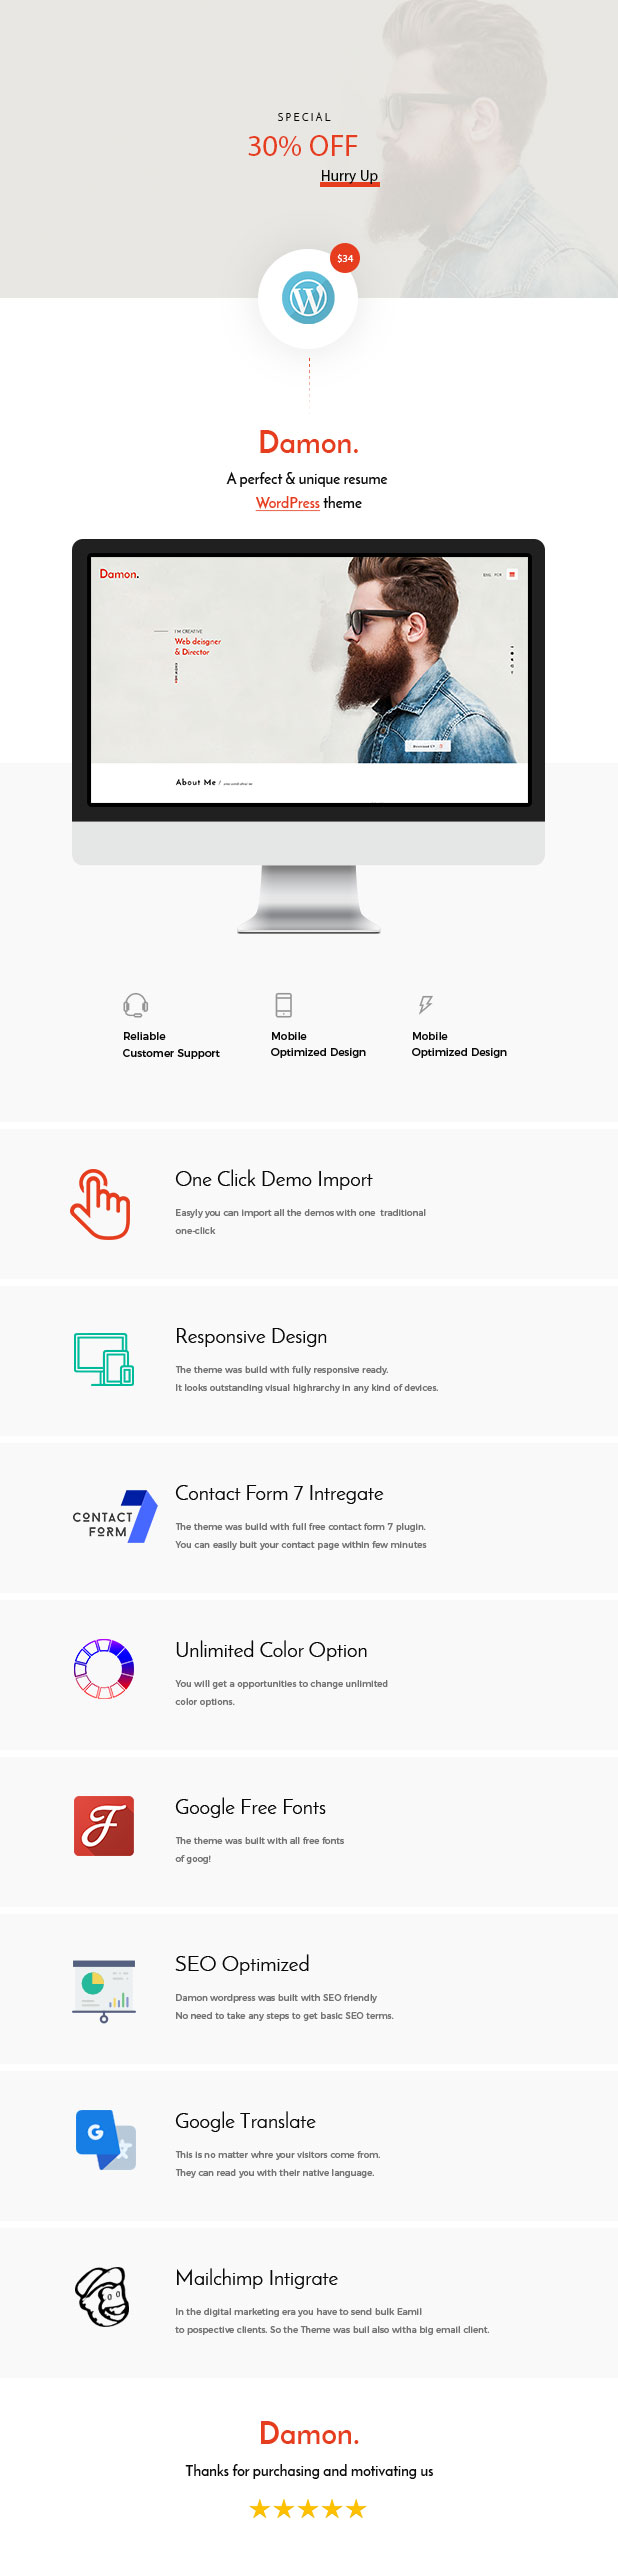 resume wordpress theme its have background sound facilities this is a perfect one to build your personal portfolios it has a lot of functionalities